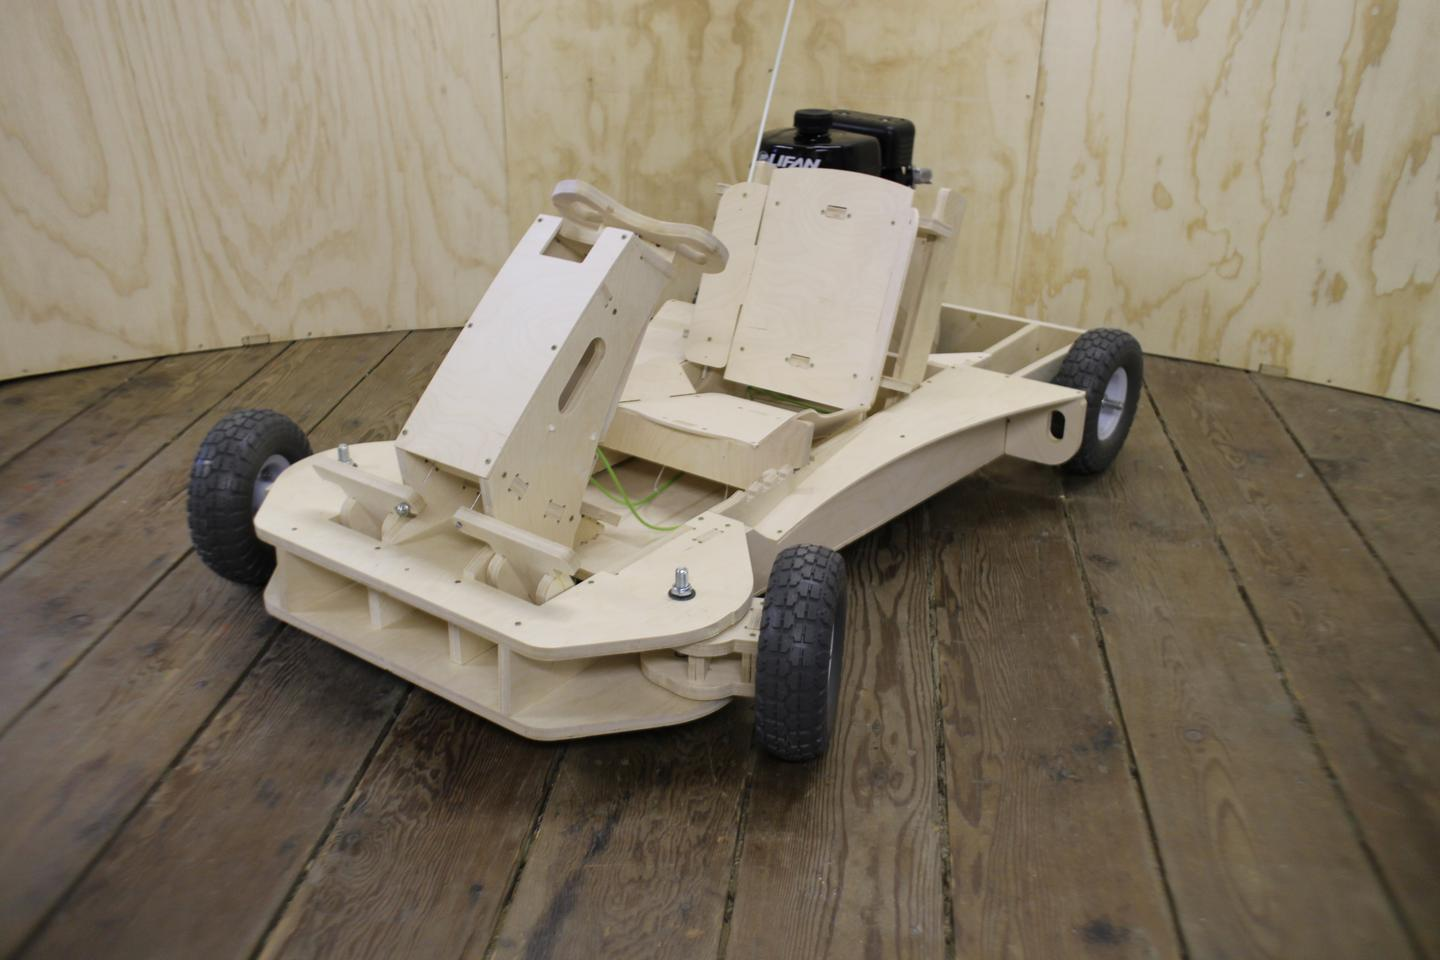 Once assembled, the PlyFly Go-Kart measures 101 x 58 x142 cm (40 x 23 x 56.5 in)